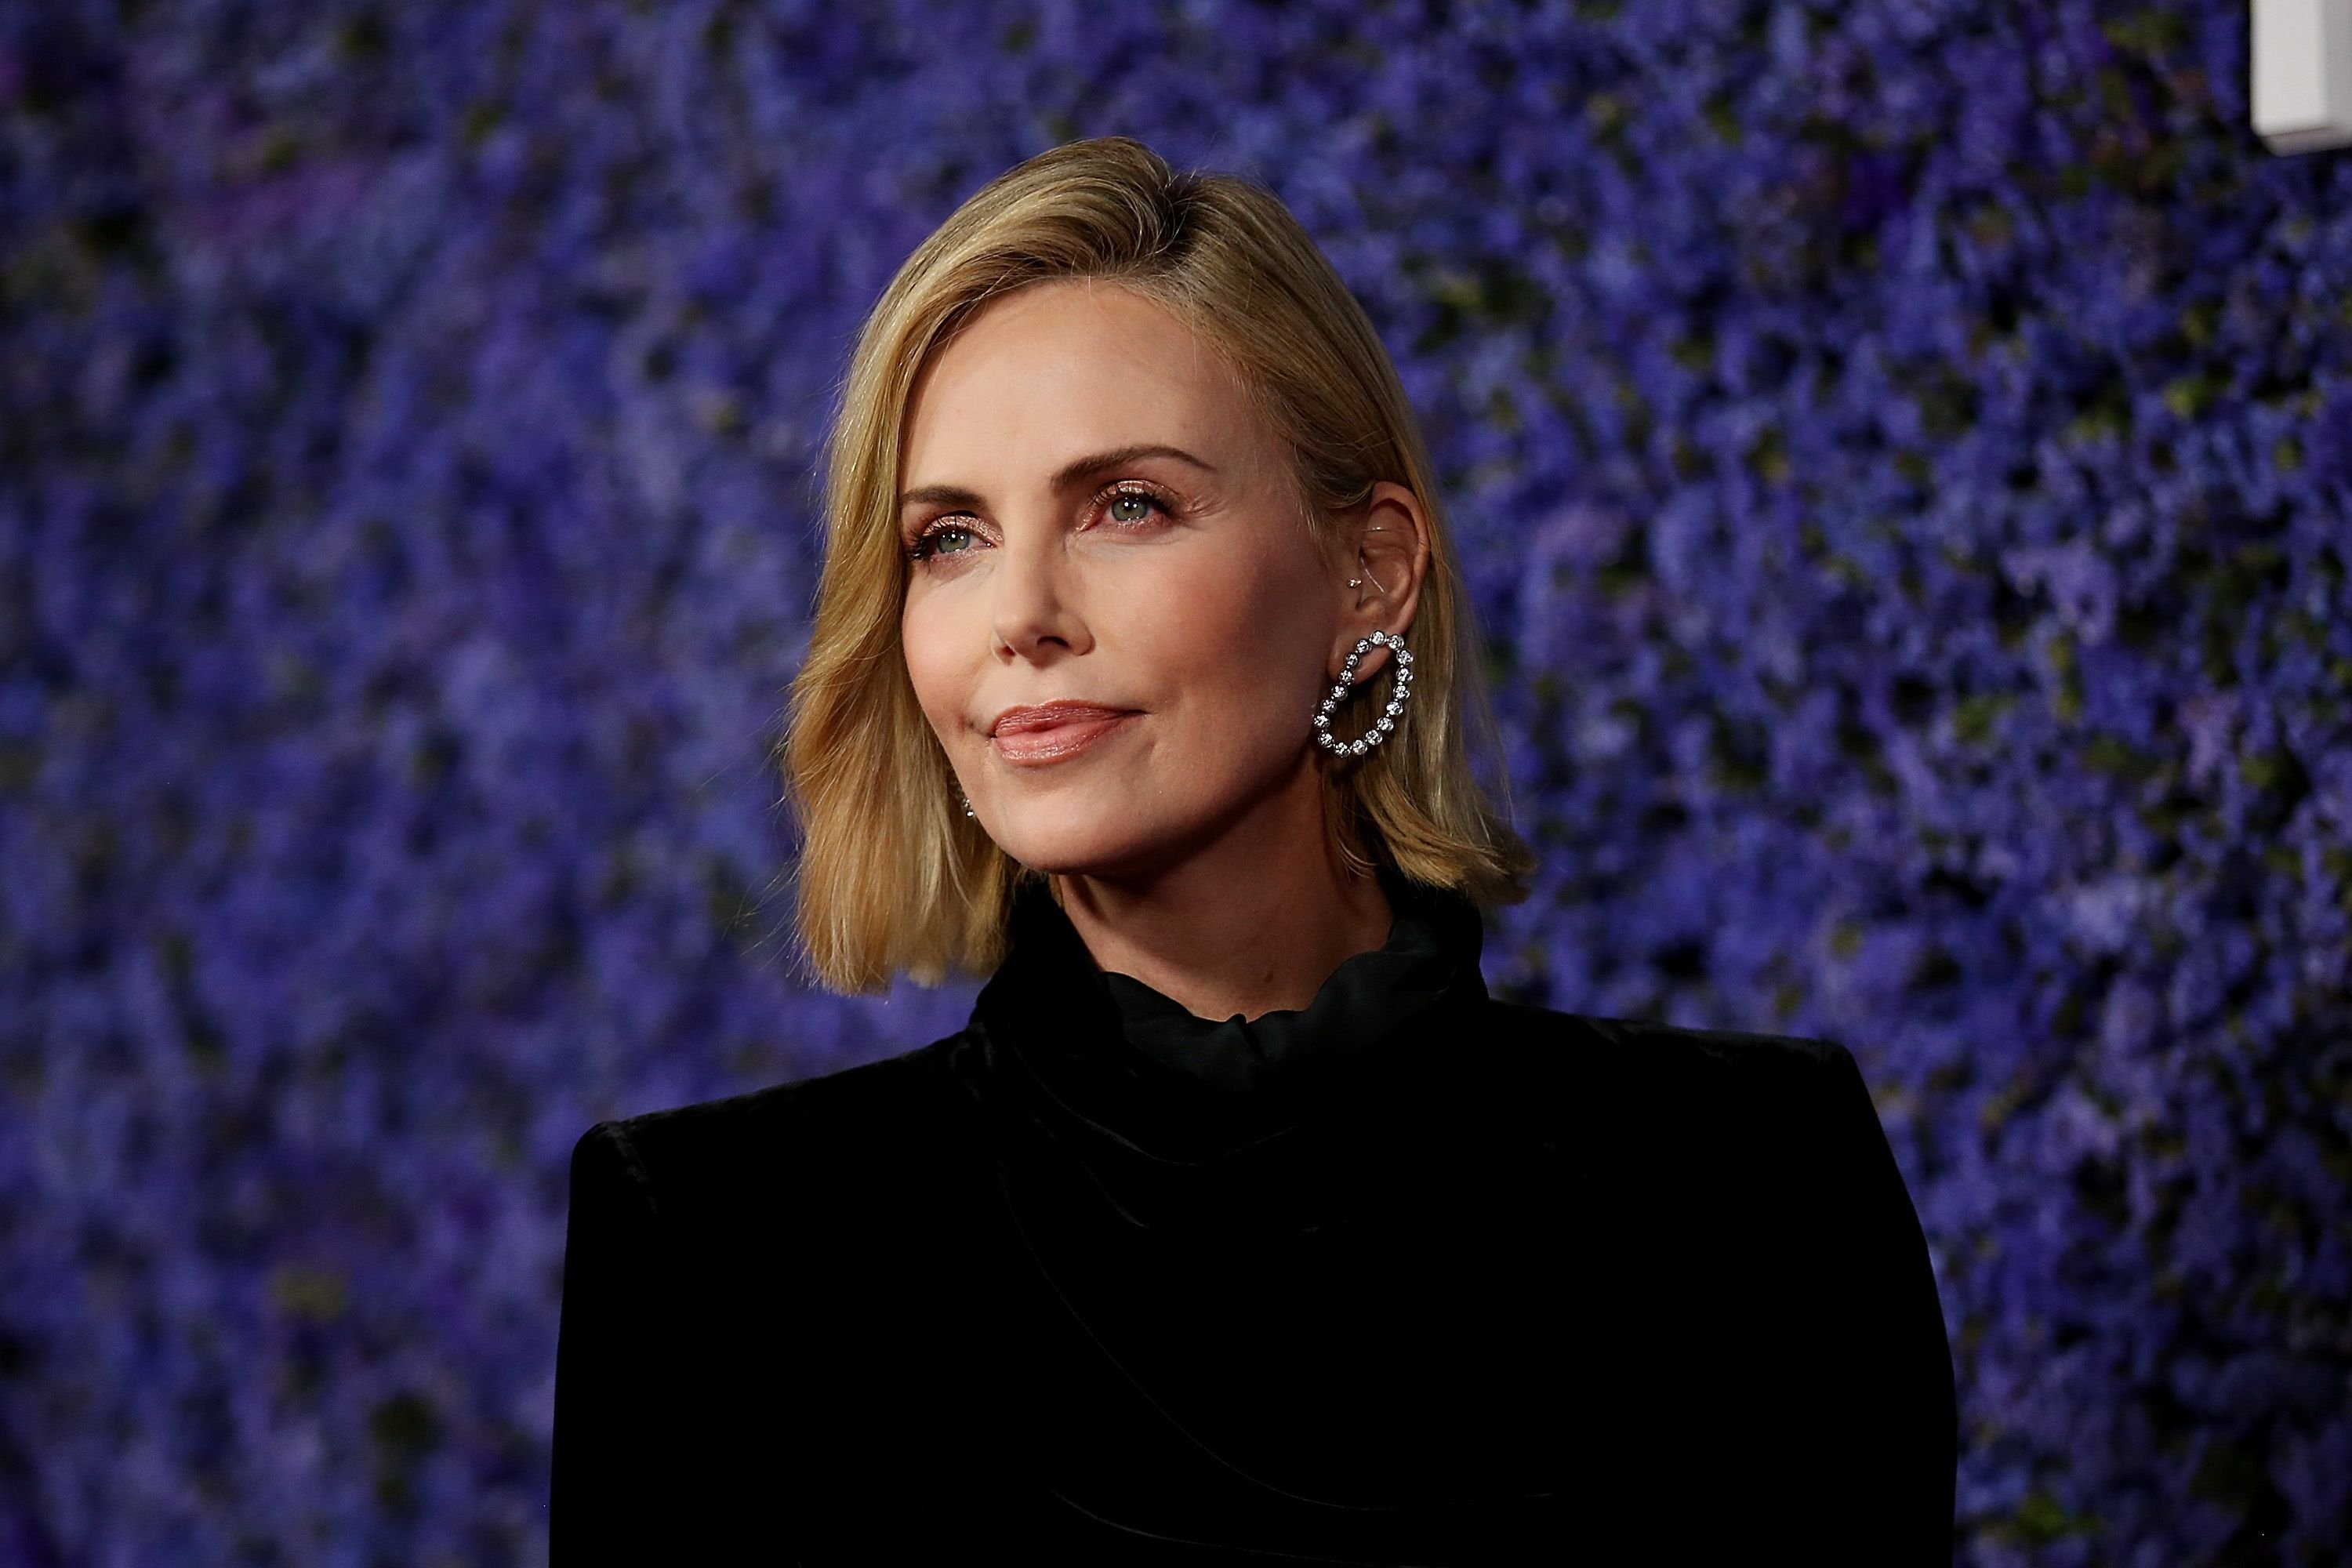 Charlize Theron attends Caruso's Palisades Village opening gala. | Source: Getty Images